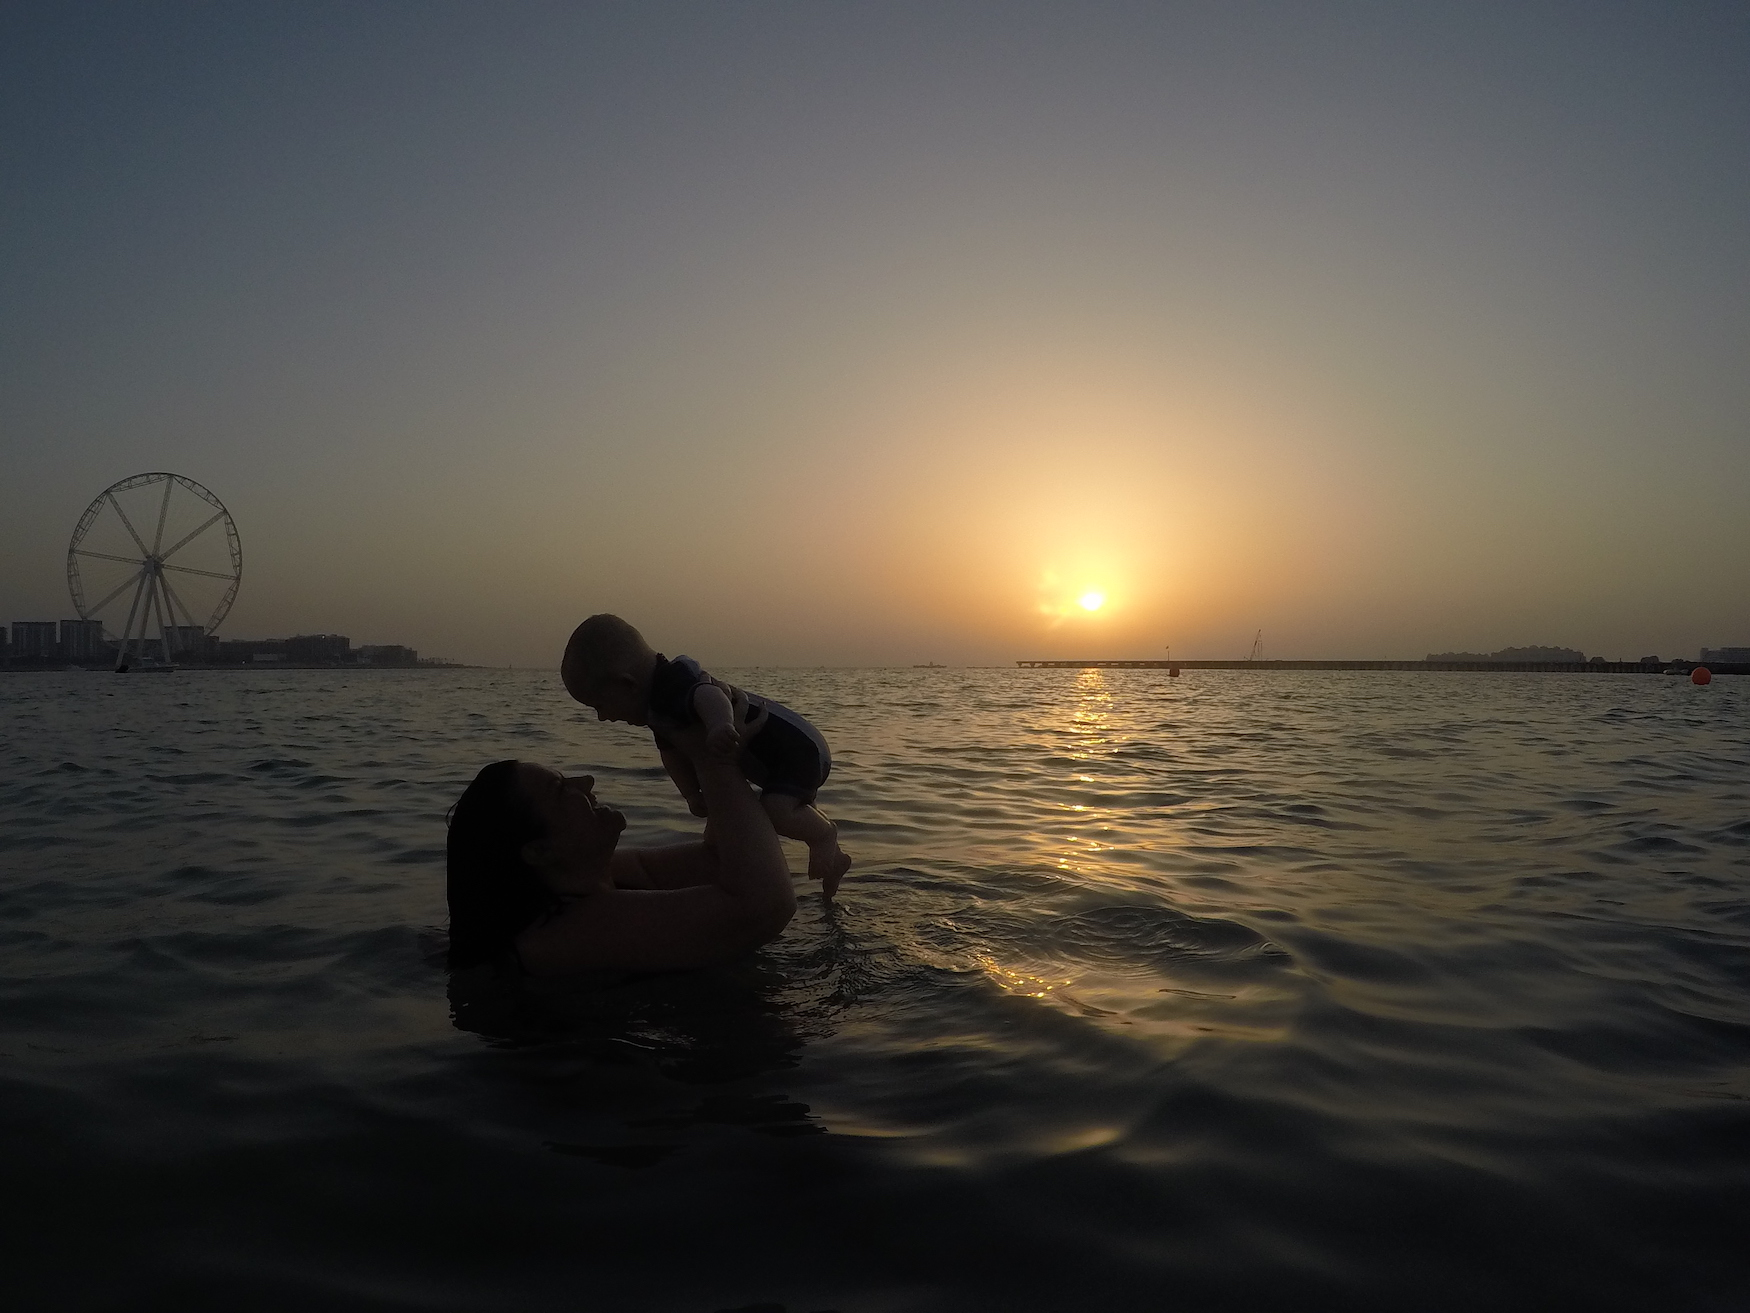 Mum holding up child in sea with sunset